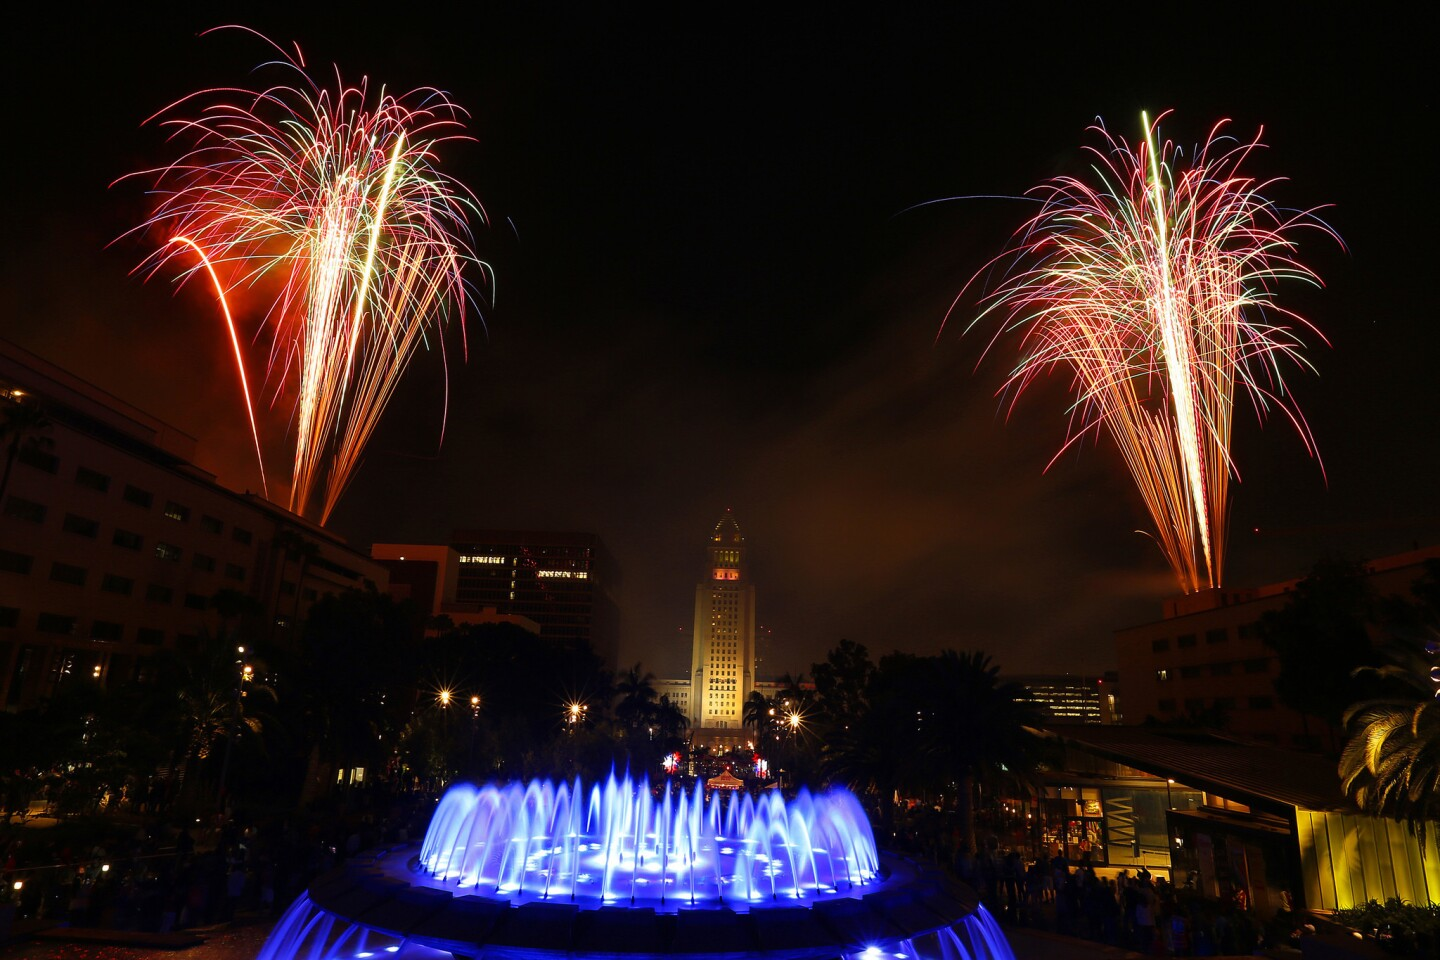 Fireworks light up the night around City Hall at the Grand Park Fourth of July Block Party in downtown Los Angeles.